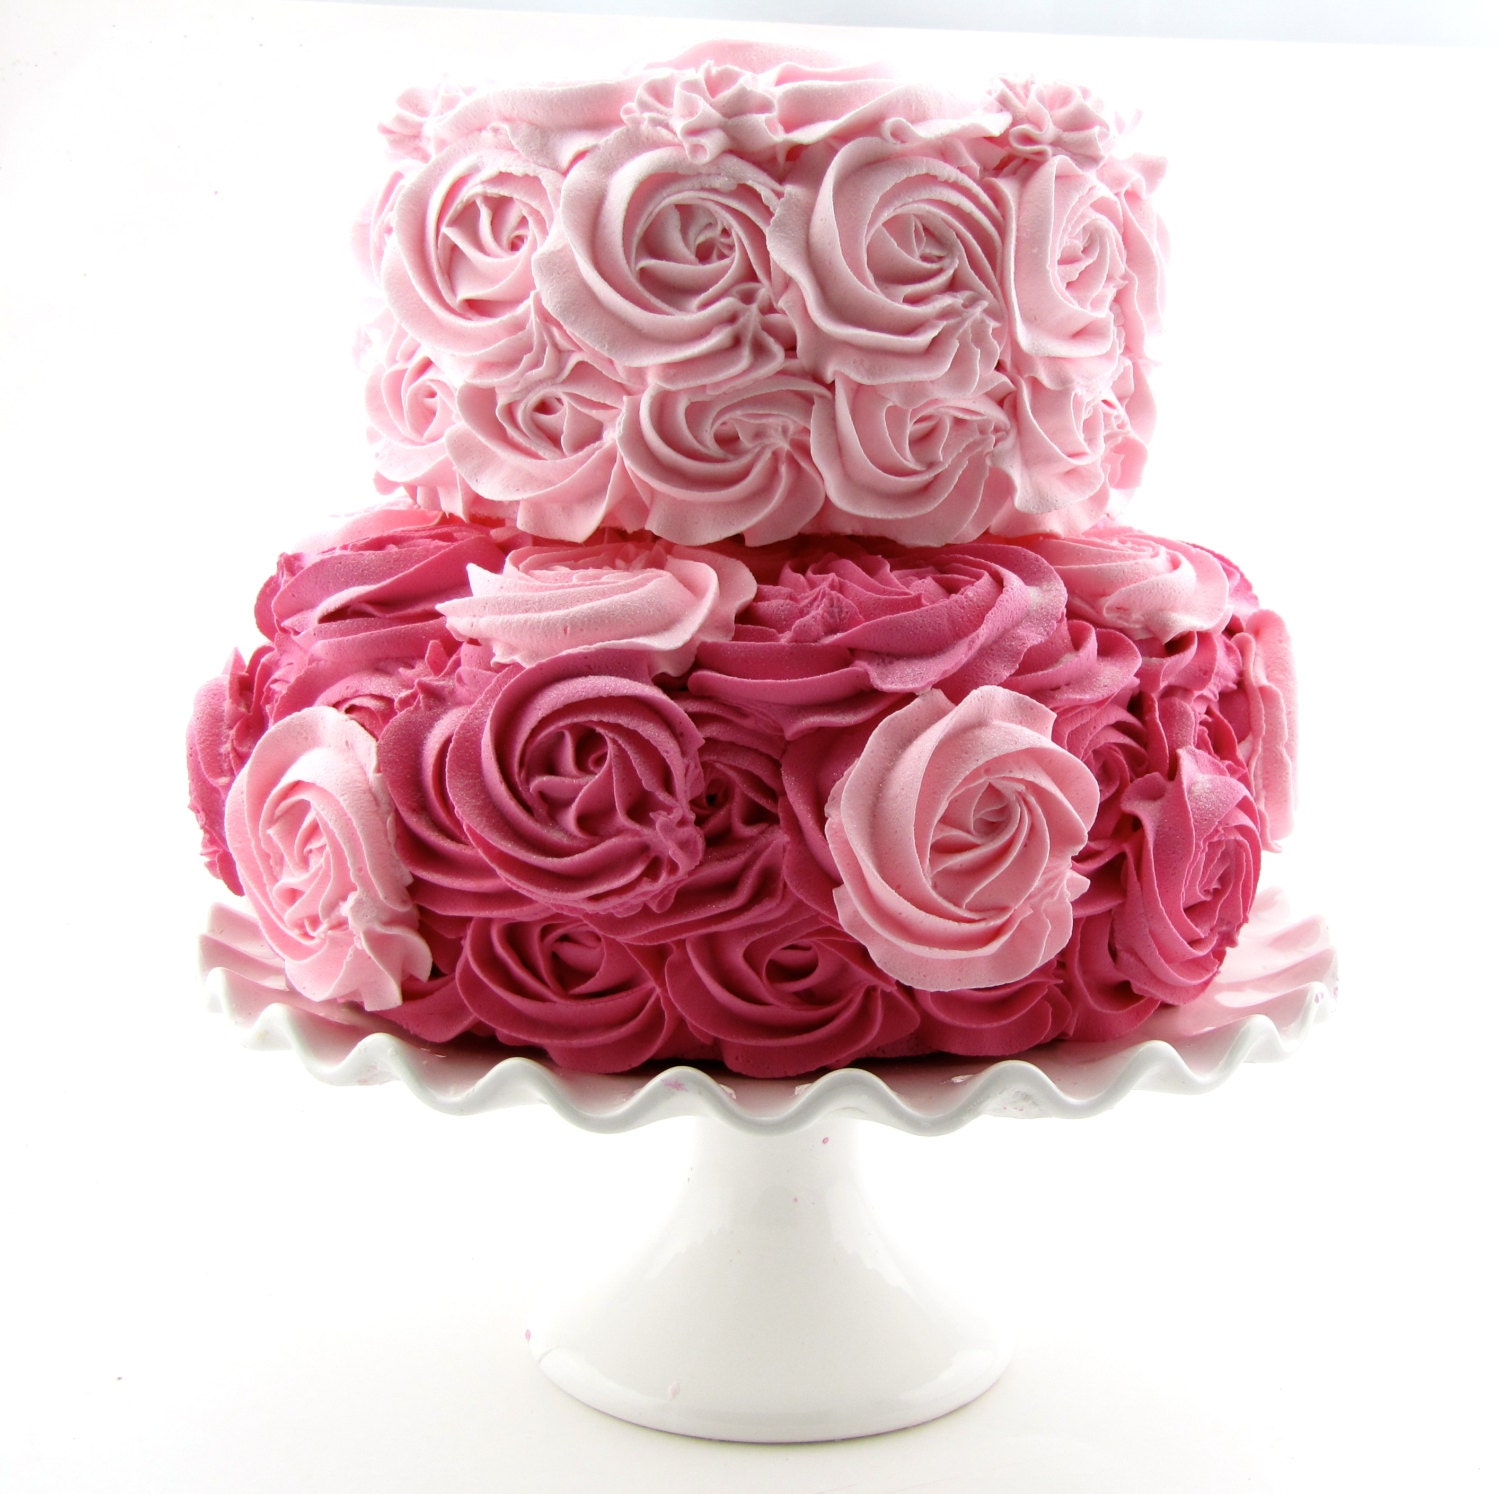 Pink Hot Rosette Fake Cake Stackable 2 Tier Bottom